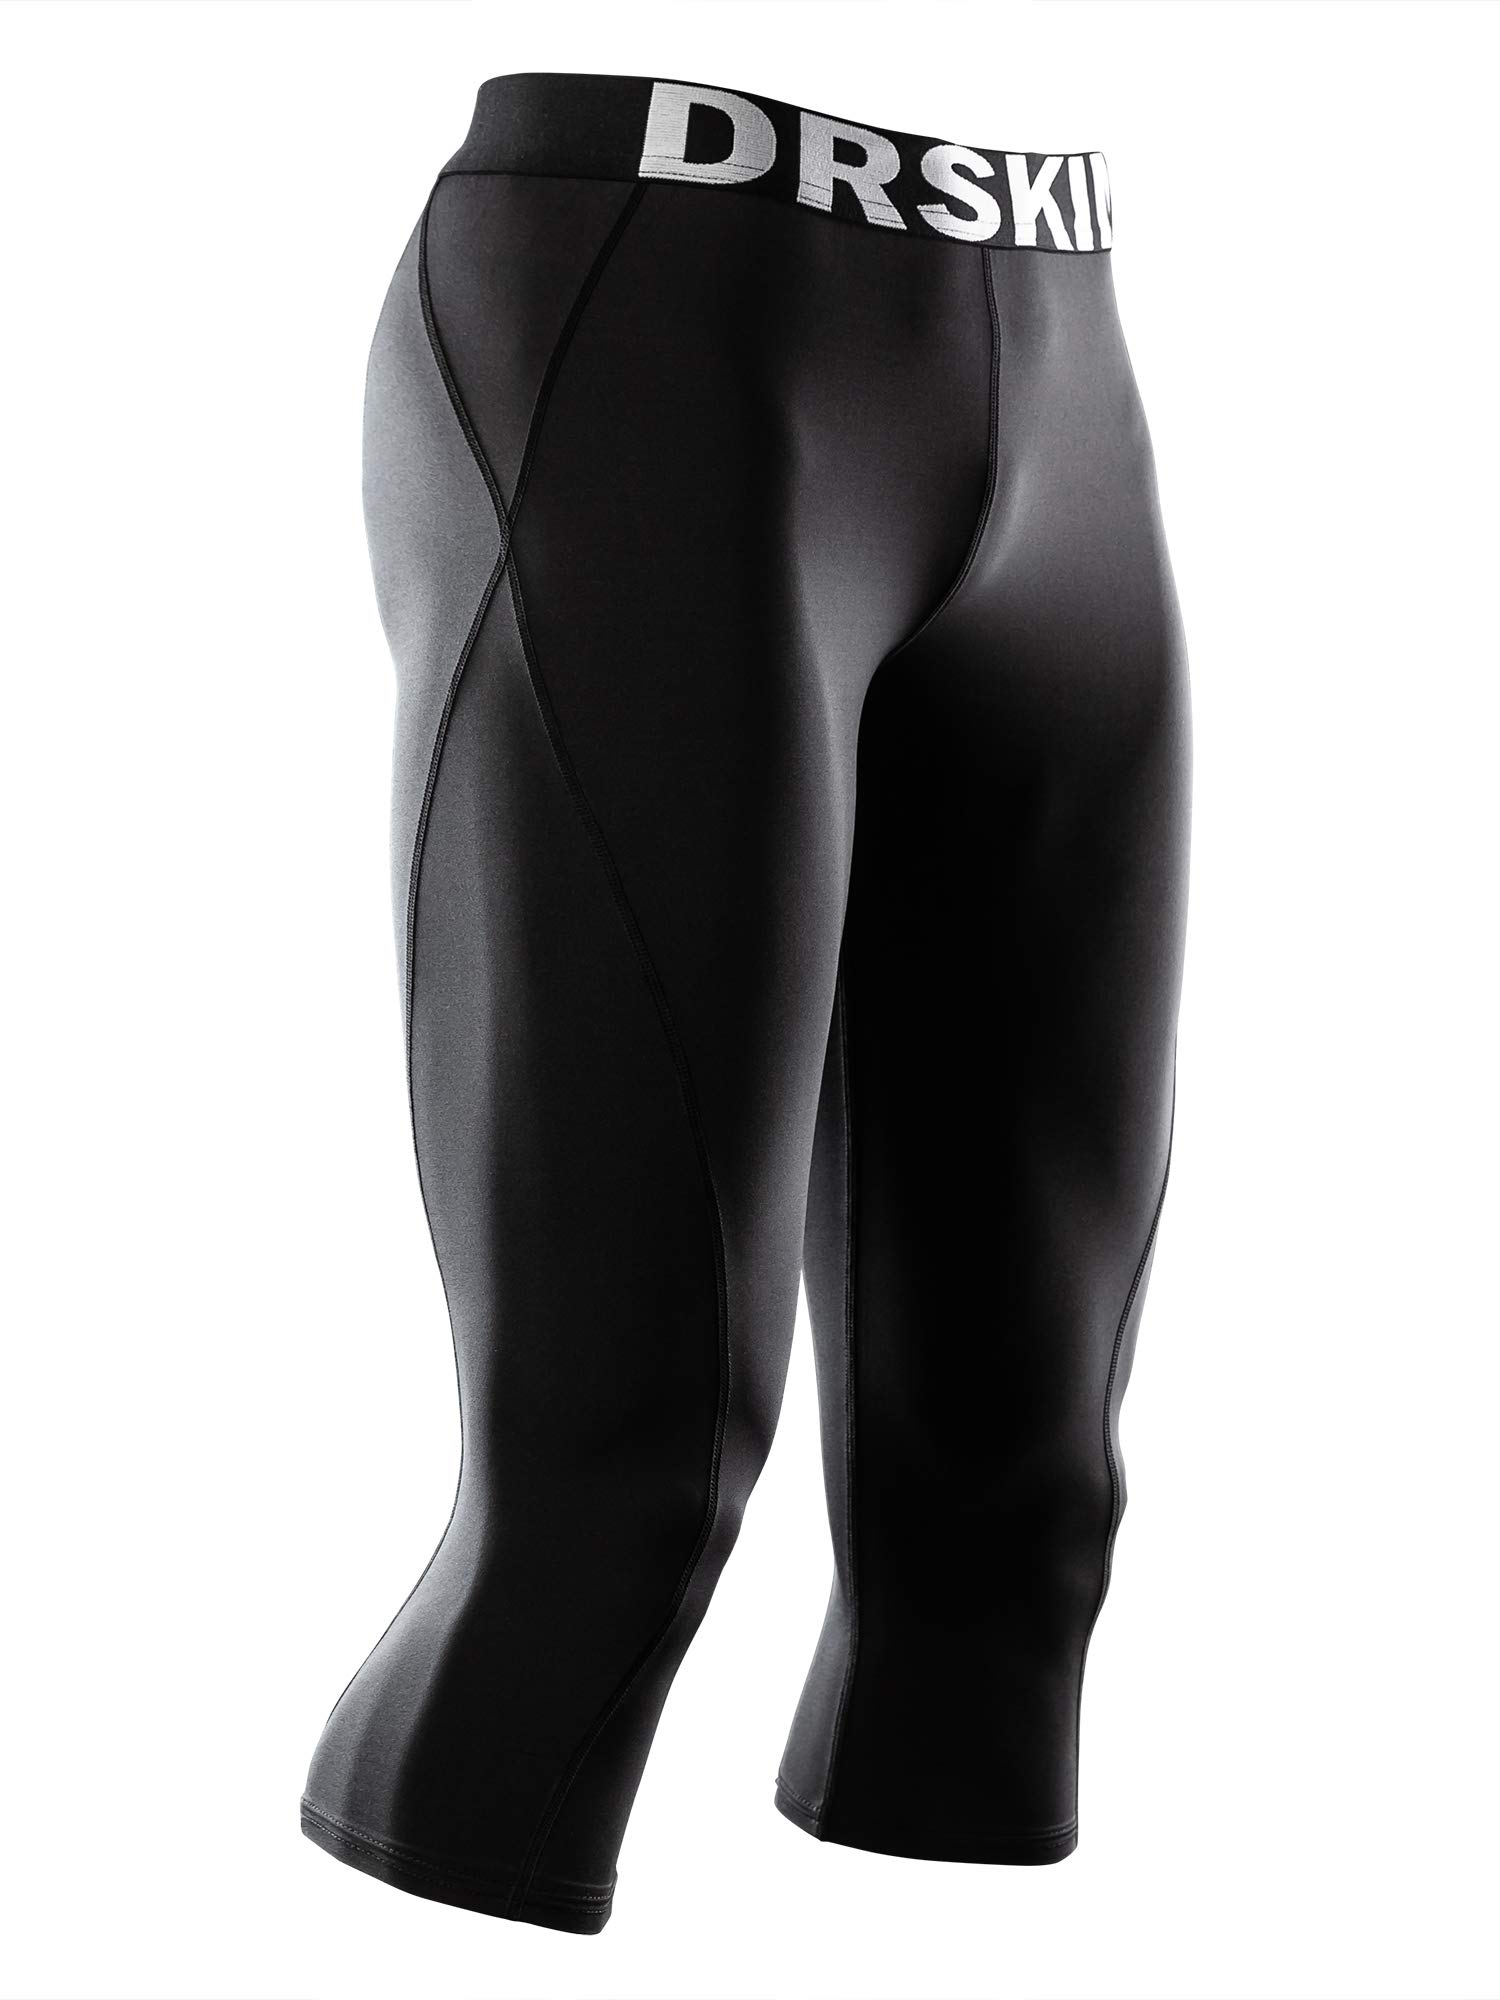 DRSKIN] Tight 3/4 Compression Pants Base Layer Running Pants Men (S, BB807) by DRSKIN